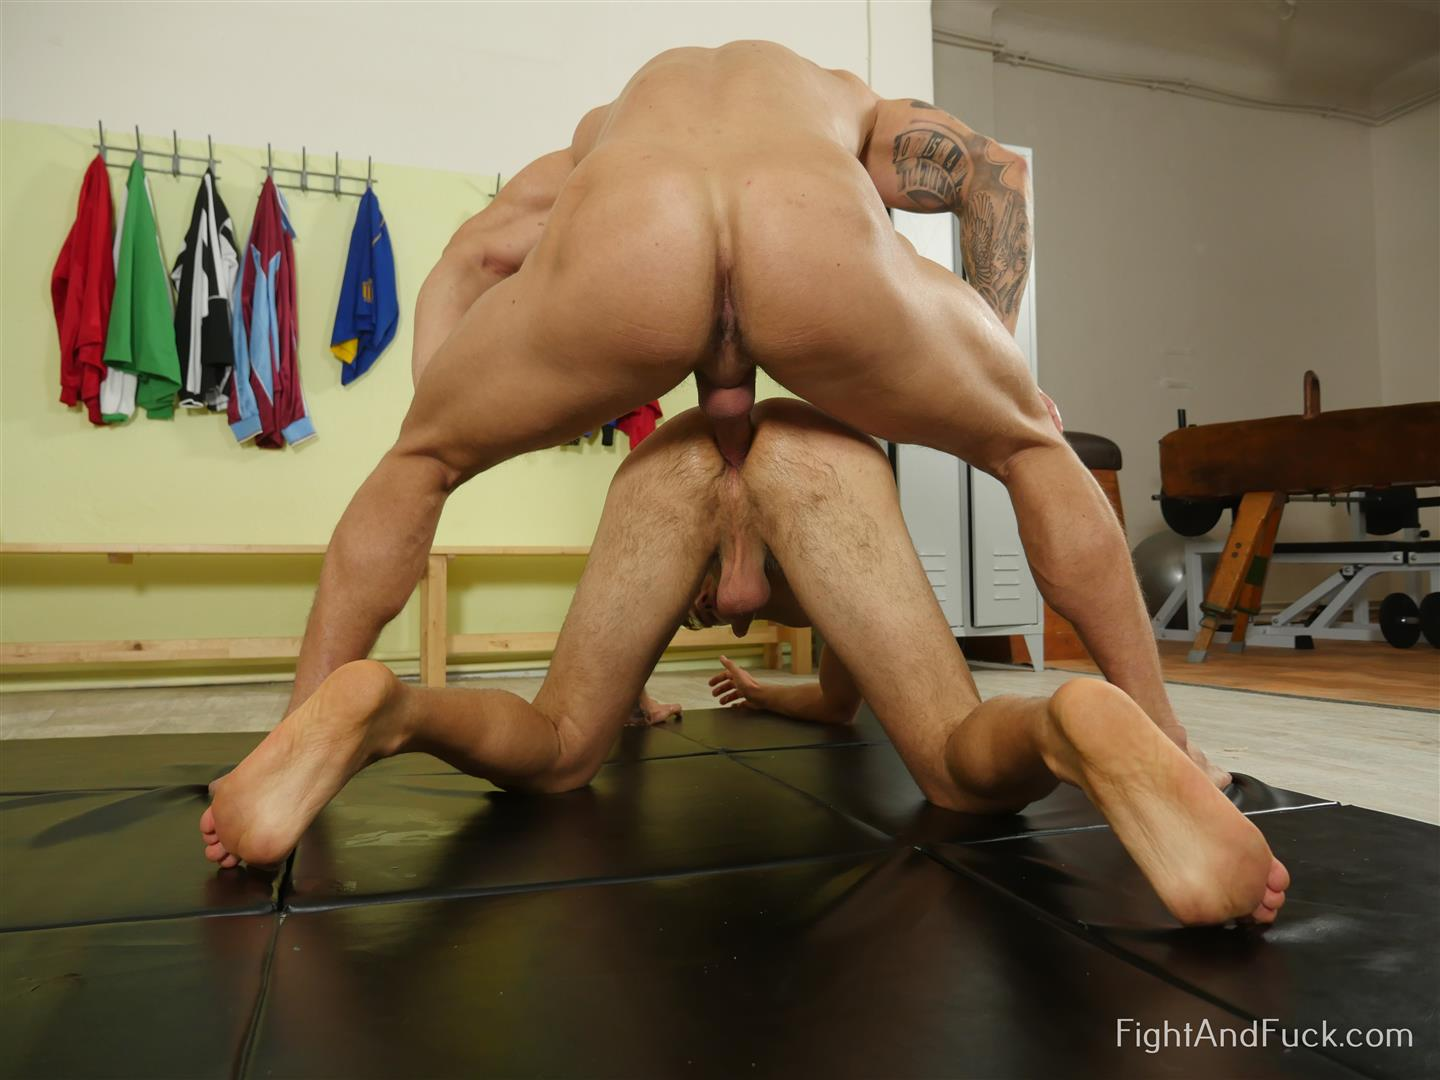 Fight-and-Fuck-Luke-Ward-and-Jamie-Oliver-Wrestlers-Bareback-Fuck-13 Muscle Hunk Wrestling Followed By Bareback Sex With A Big Uncut Cock